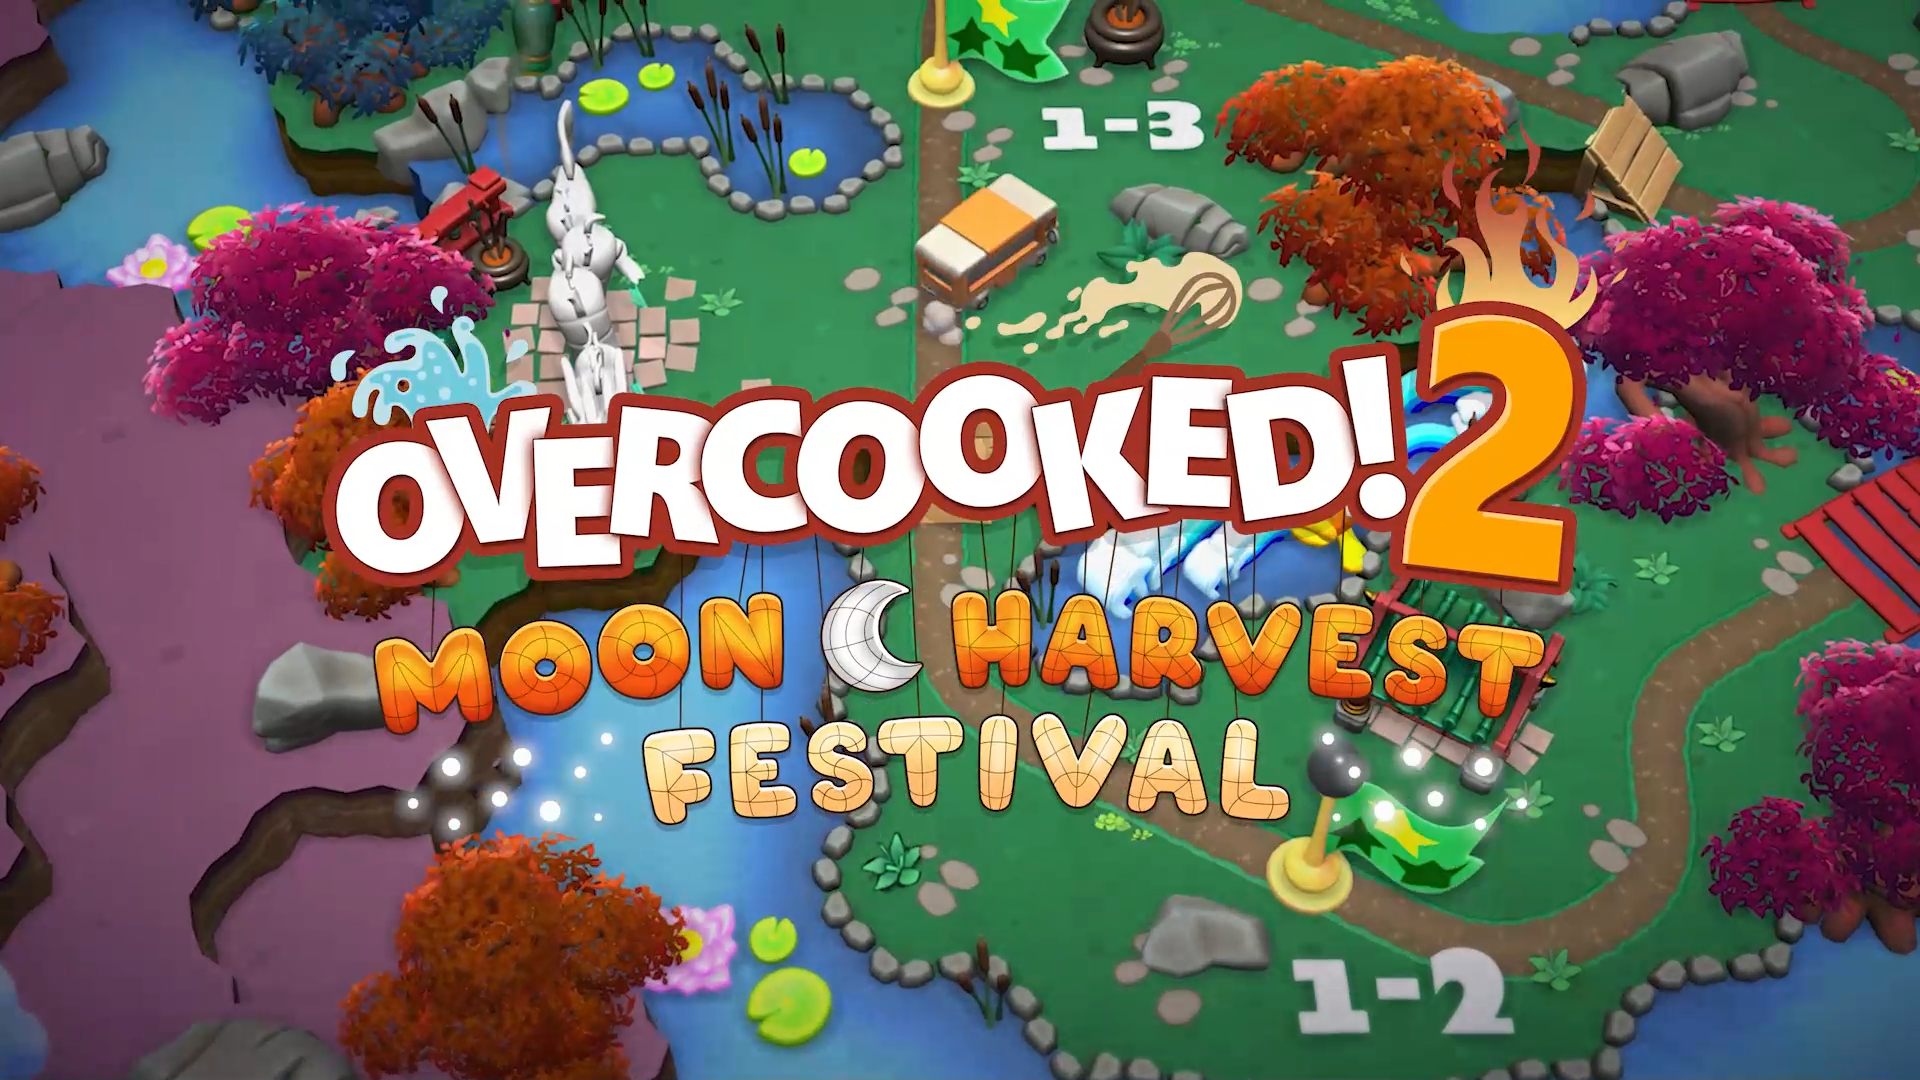 Overcooked 2 Free Moon Harvest